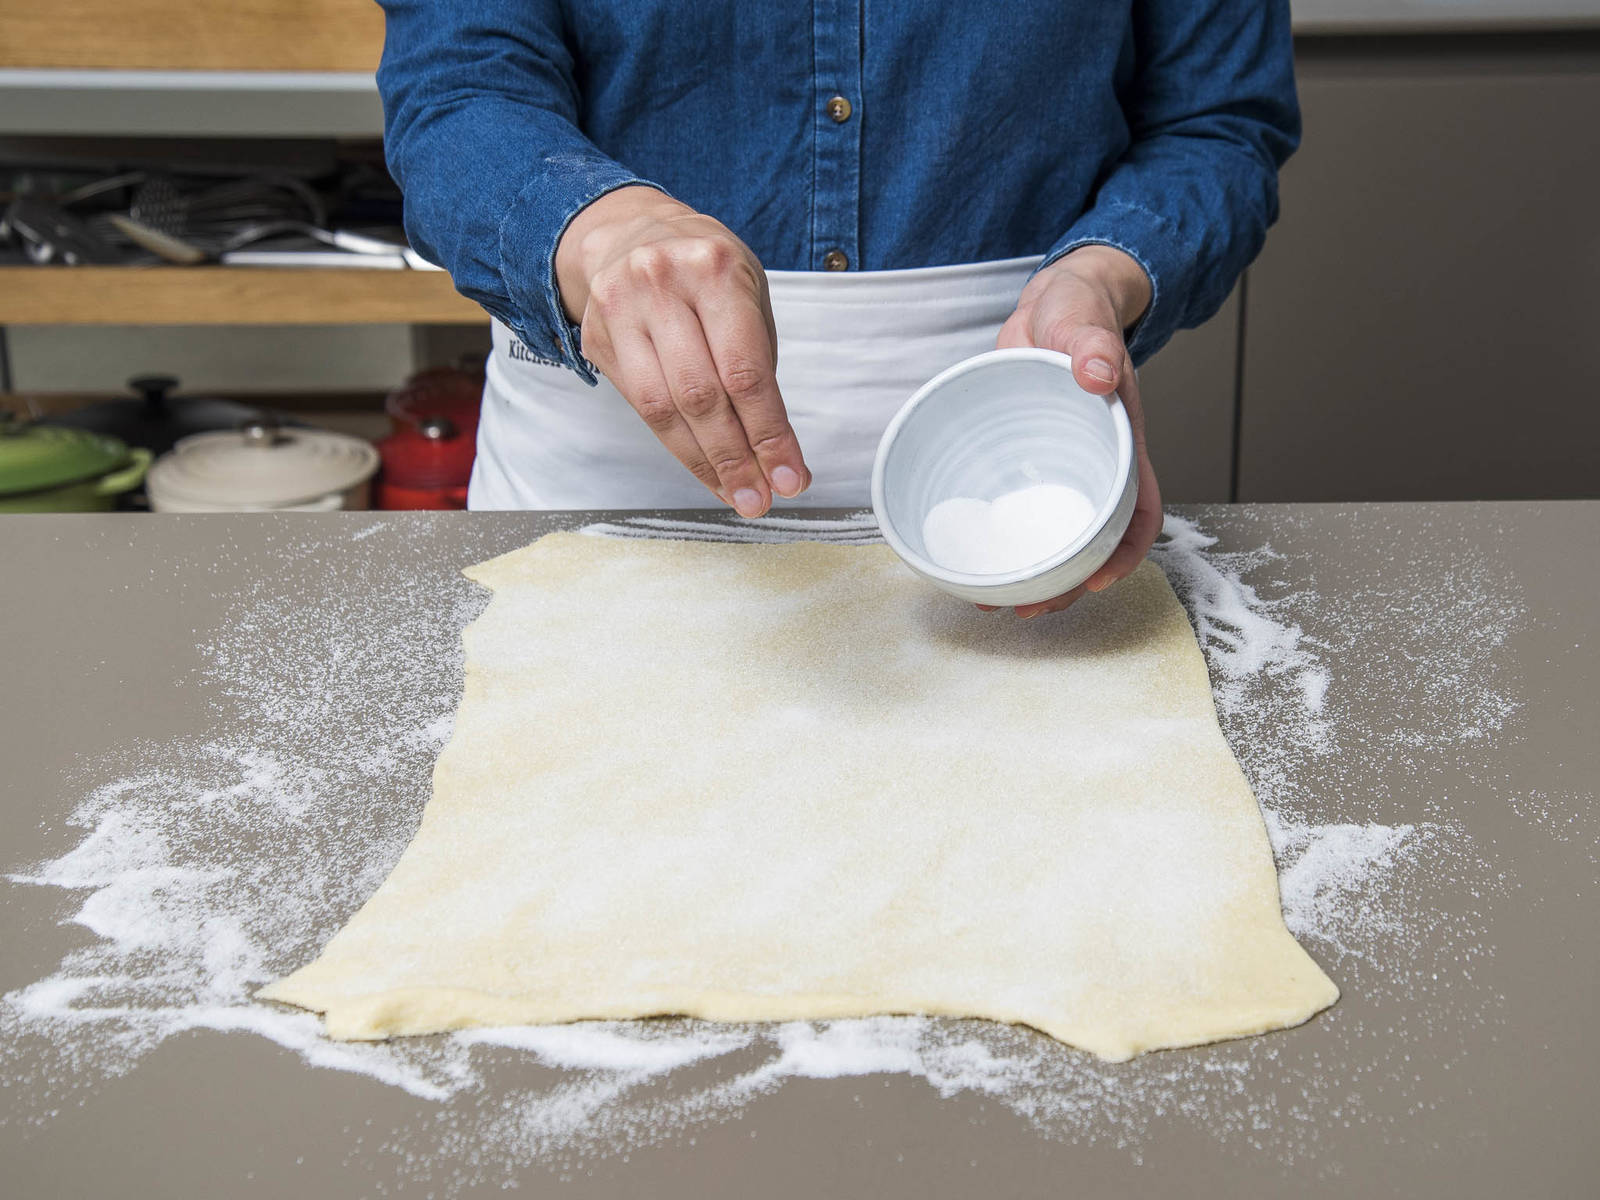 combine sugar and salt in a small bowl. Sprinkle some of the sugar mixture over a clean work surface, then place the puff pastry on top. Roll chilled pastry into a rectangle approx. 0.5-cm/0.25-inch.-thick, pressing the sugar into the dough. Sprinkle remaining sugar over the pastry, then lightly roll the pin over the sugar to press into the dough.